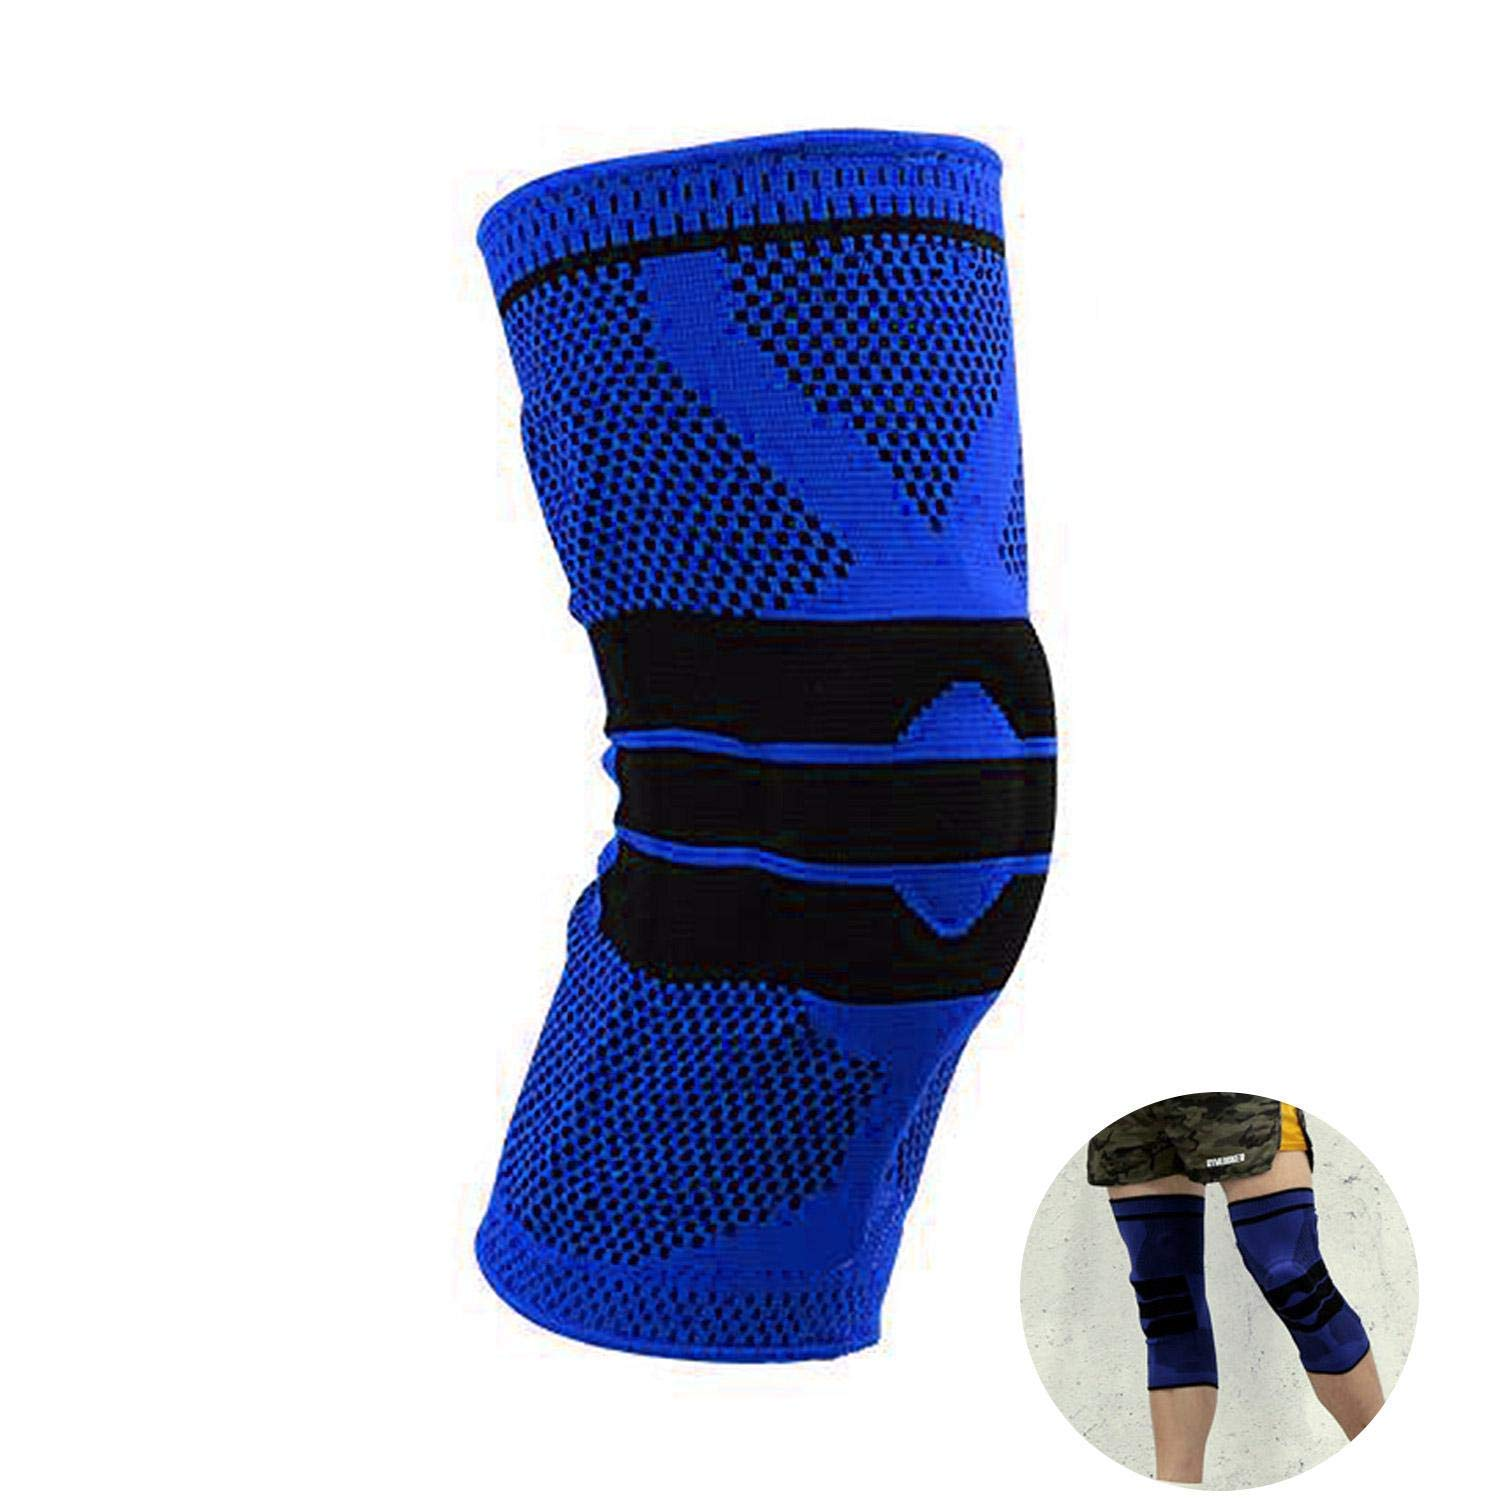 1c15a06897 Get Quotations · Aolvo Knee Compression Sleeve Knee Pad Knee Support Brace  Compression Sleeve Silicone Basketball Volleyball Knee Pads